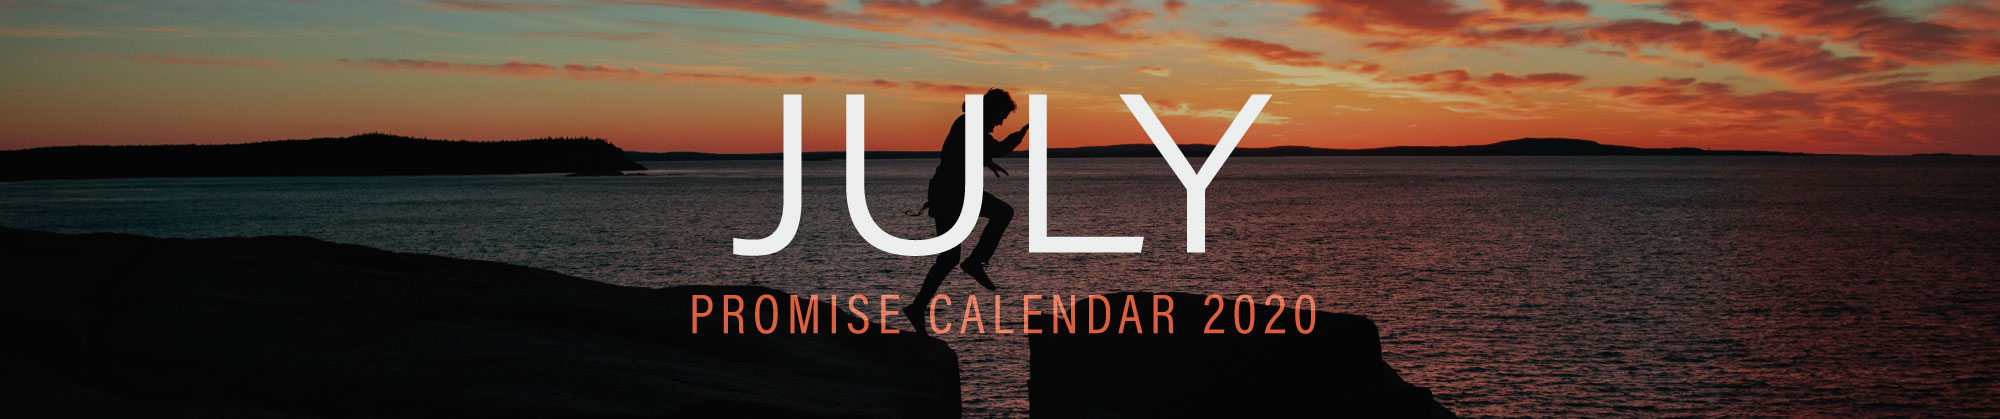 July 2020 Promise Calendar Header